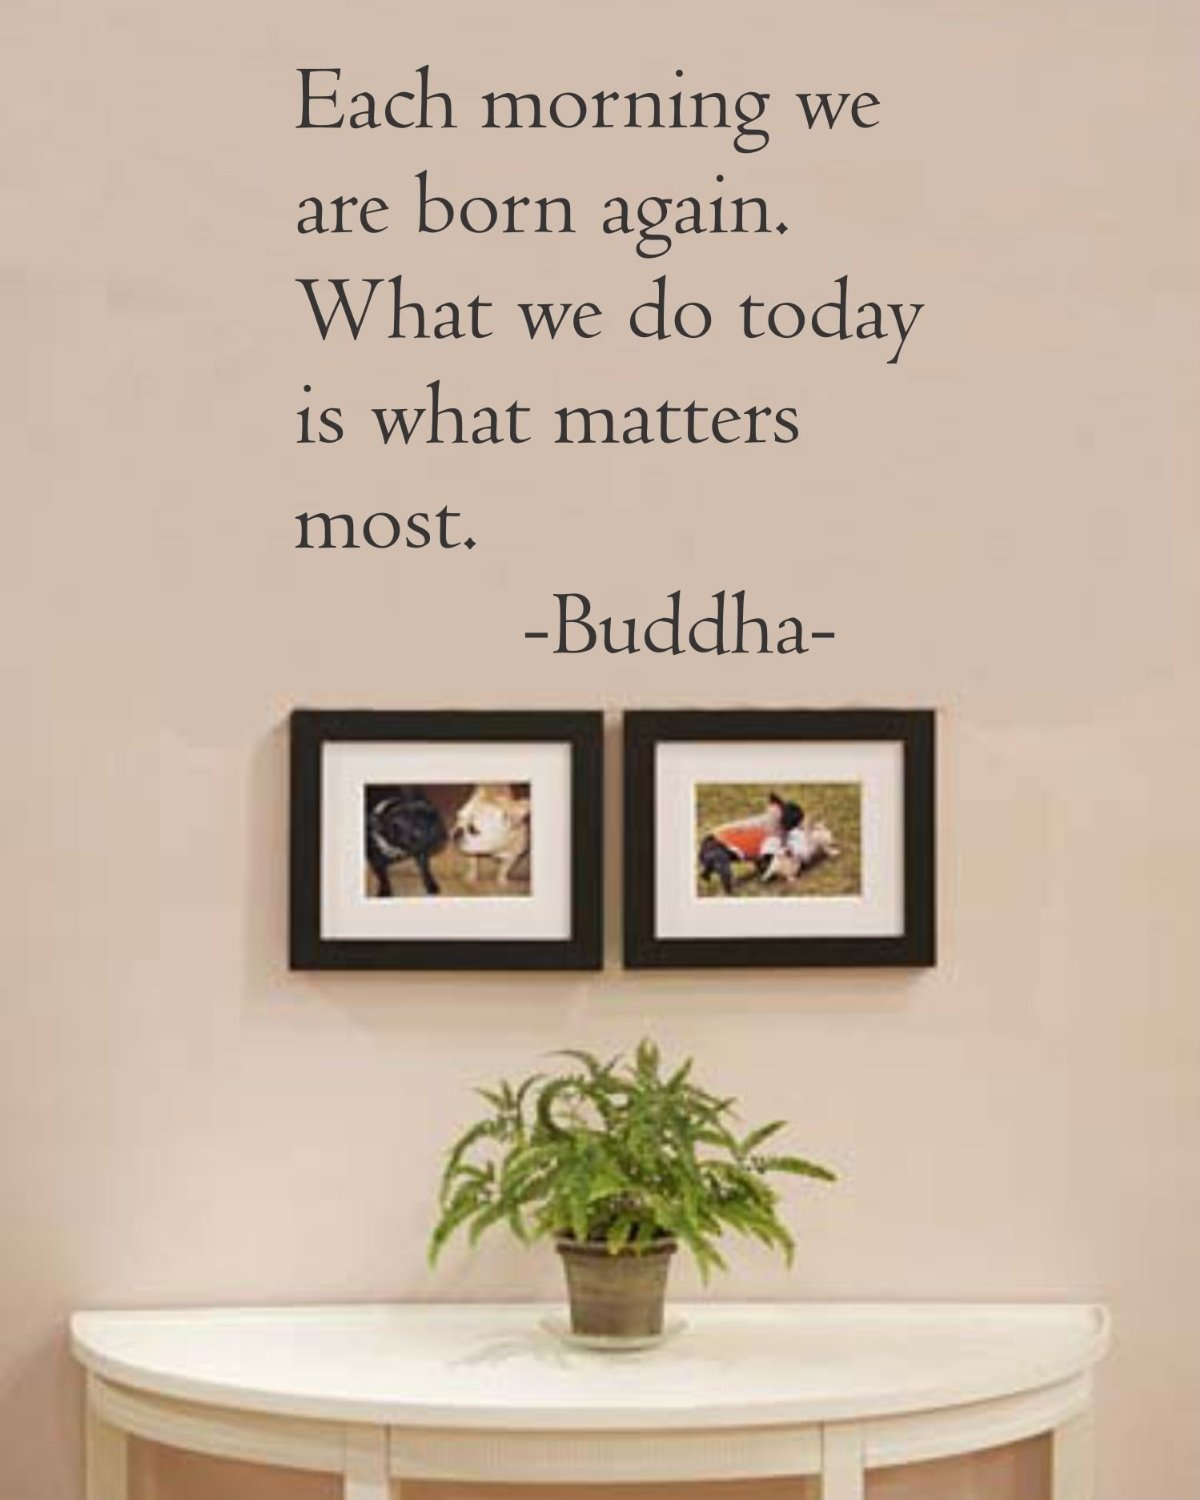 What We Do Today Is What Matters Most. Buddha Vinyl Wall Art Inspirational  Quotes And Saying Home Decor Decal Sticker: Home U0026 Kitchen